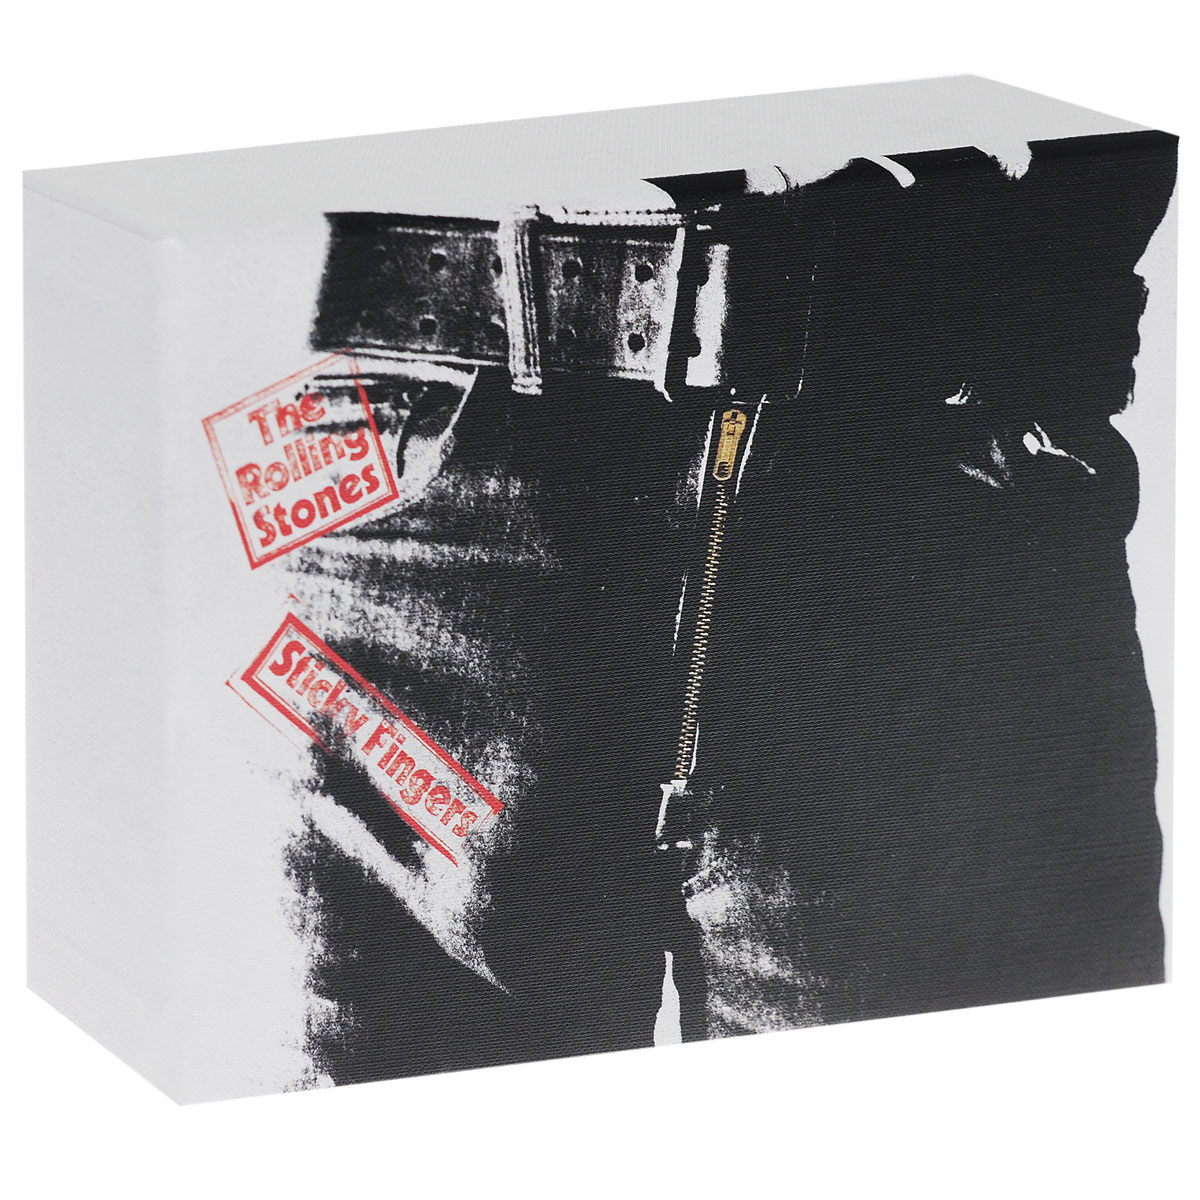 The Rolling Stones The Rolling Stones. Sticky Fingers (2 CD + DVD) 9 inch car headrest mount dvd player digital multimedia player hdmi 800 x 480 lcd screen audio video usb speaker remote control